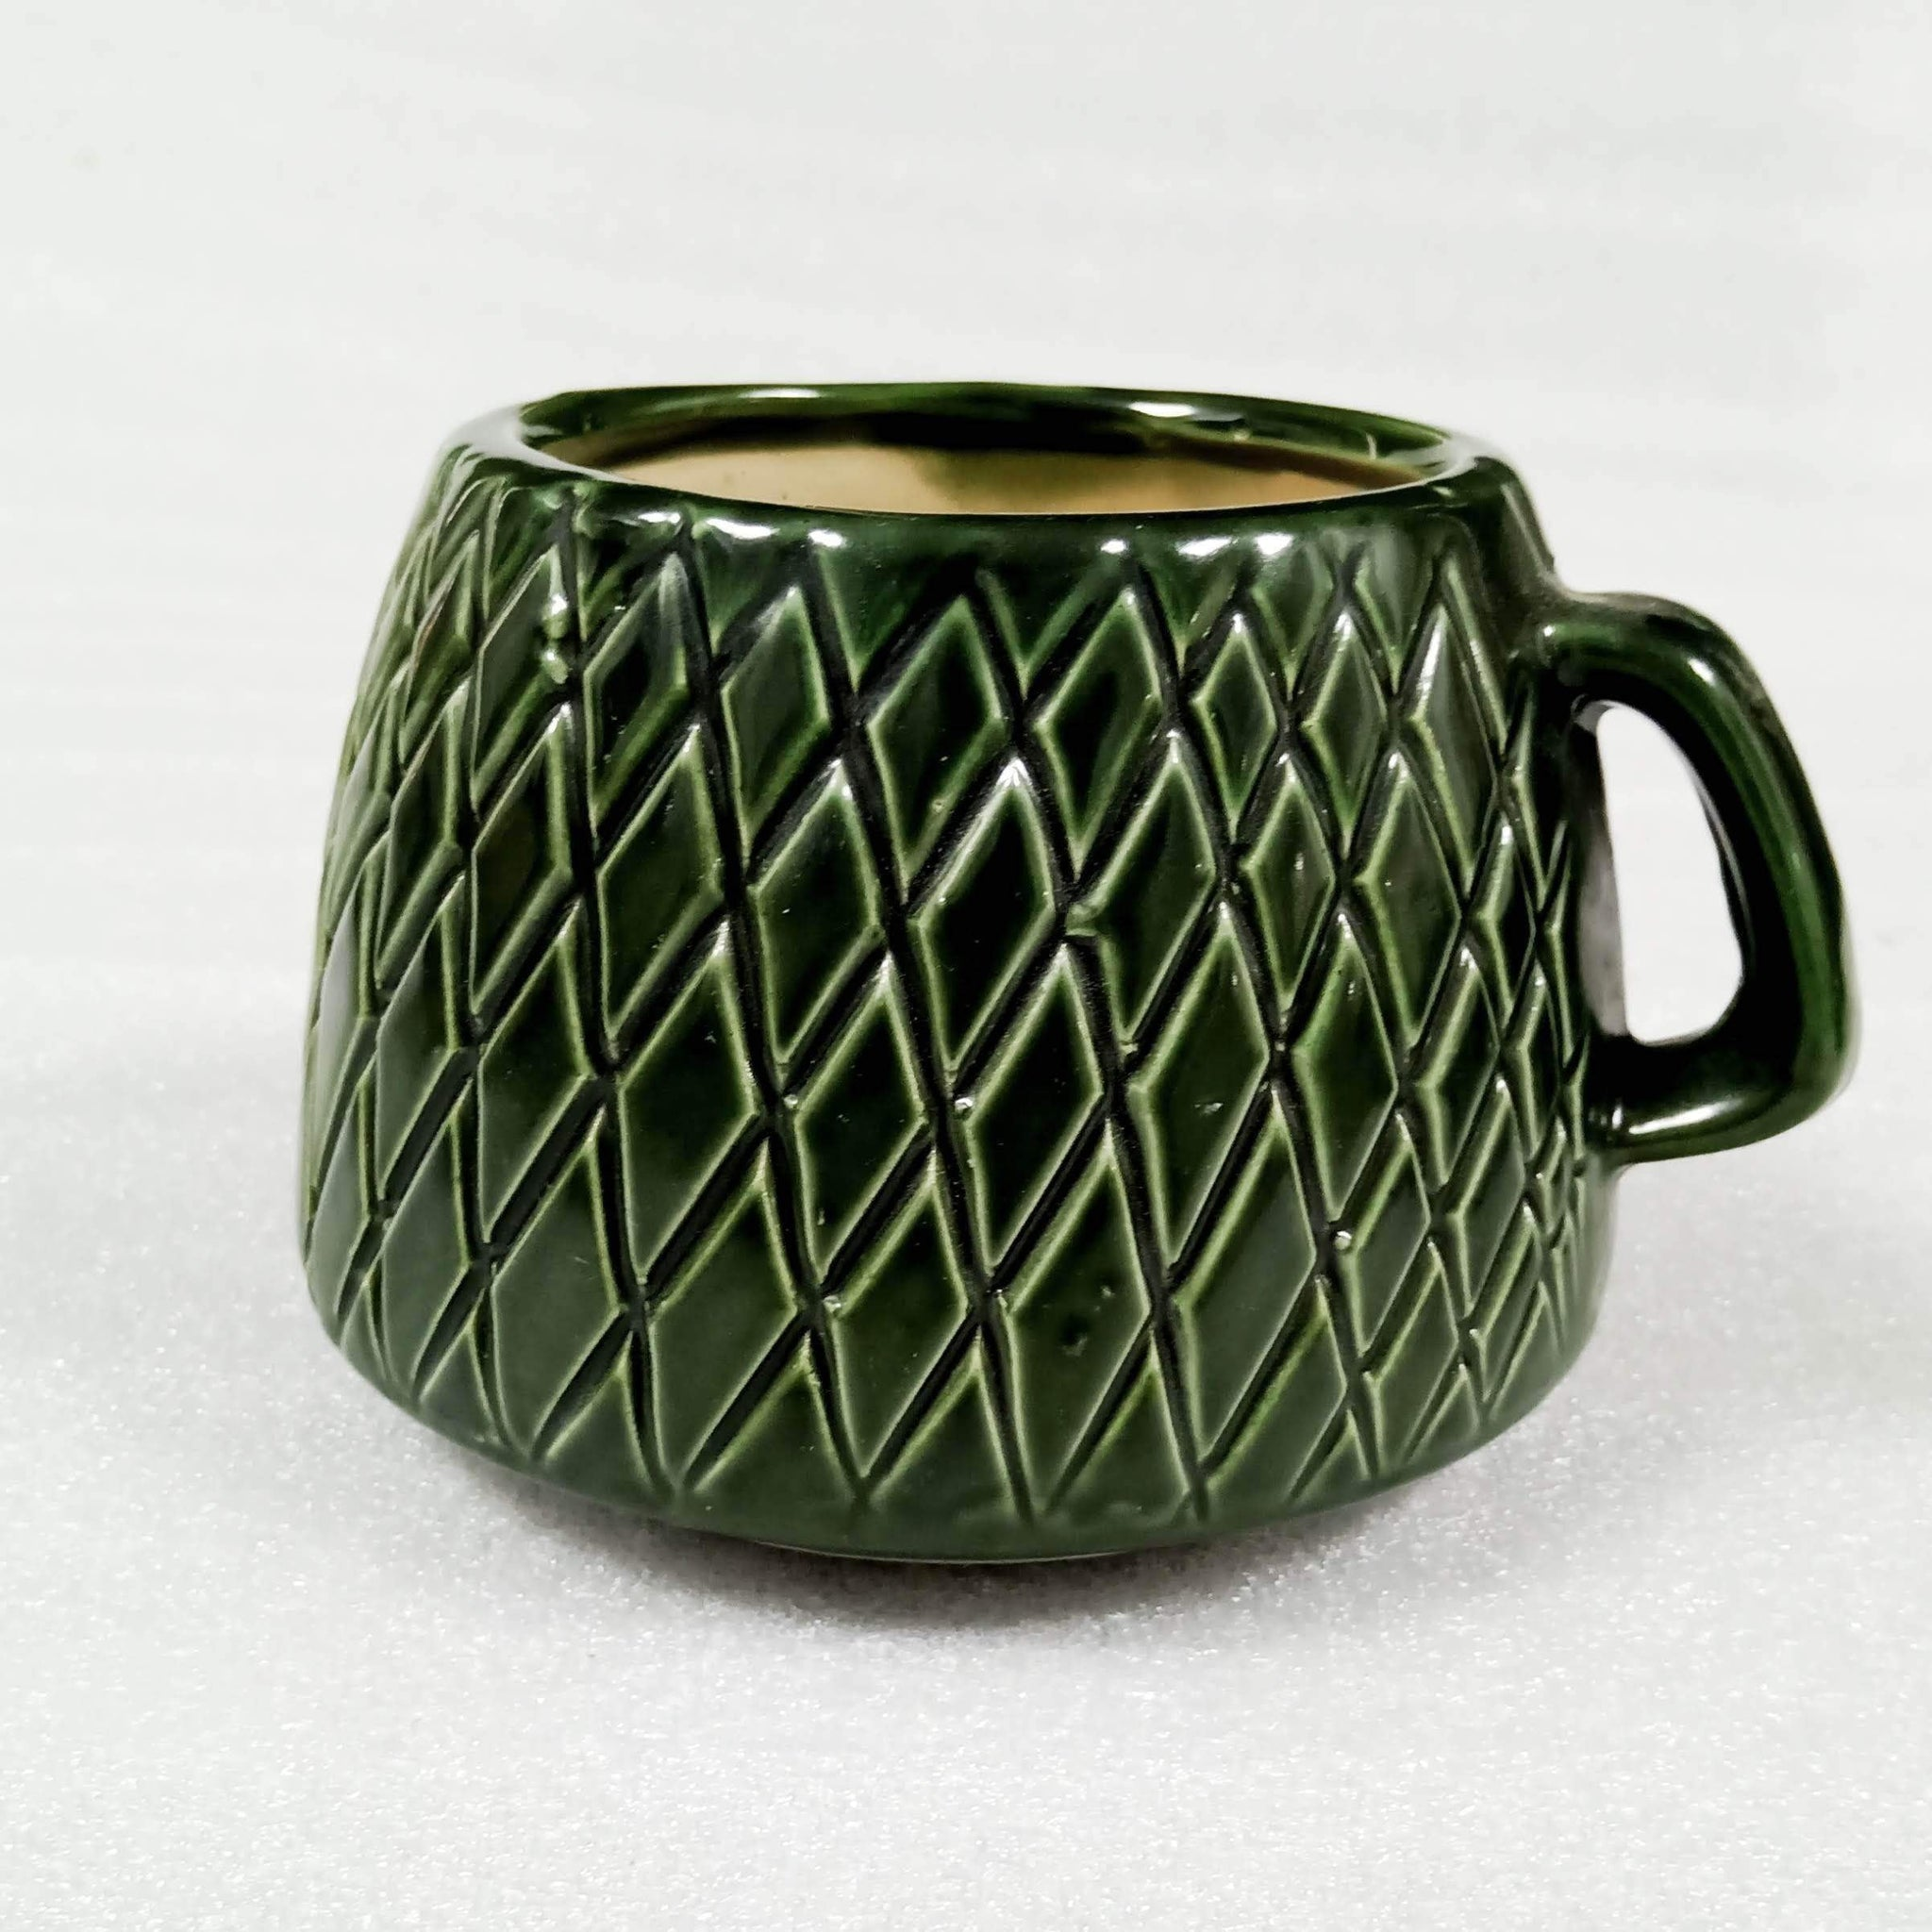 Cup Shaped Green Indoor Ceramic Planter